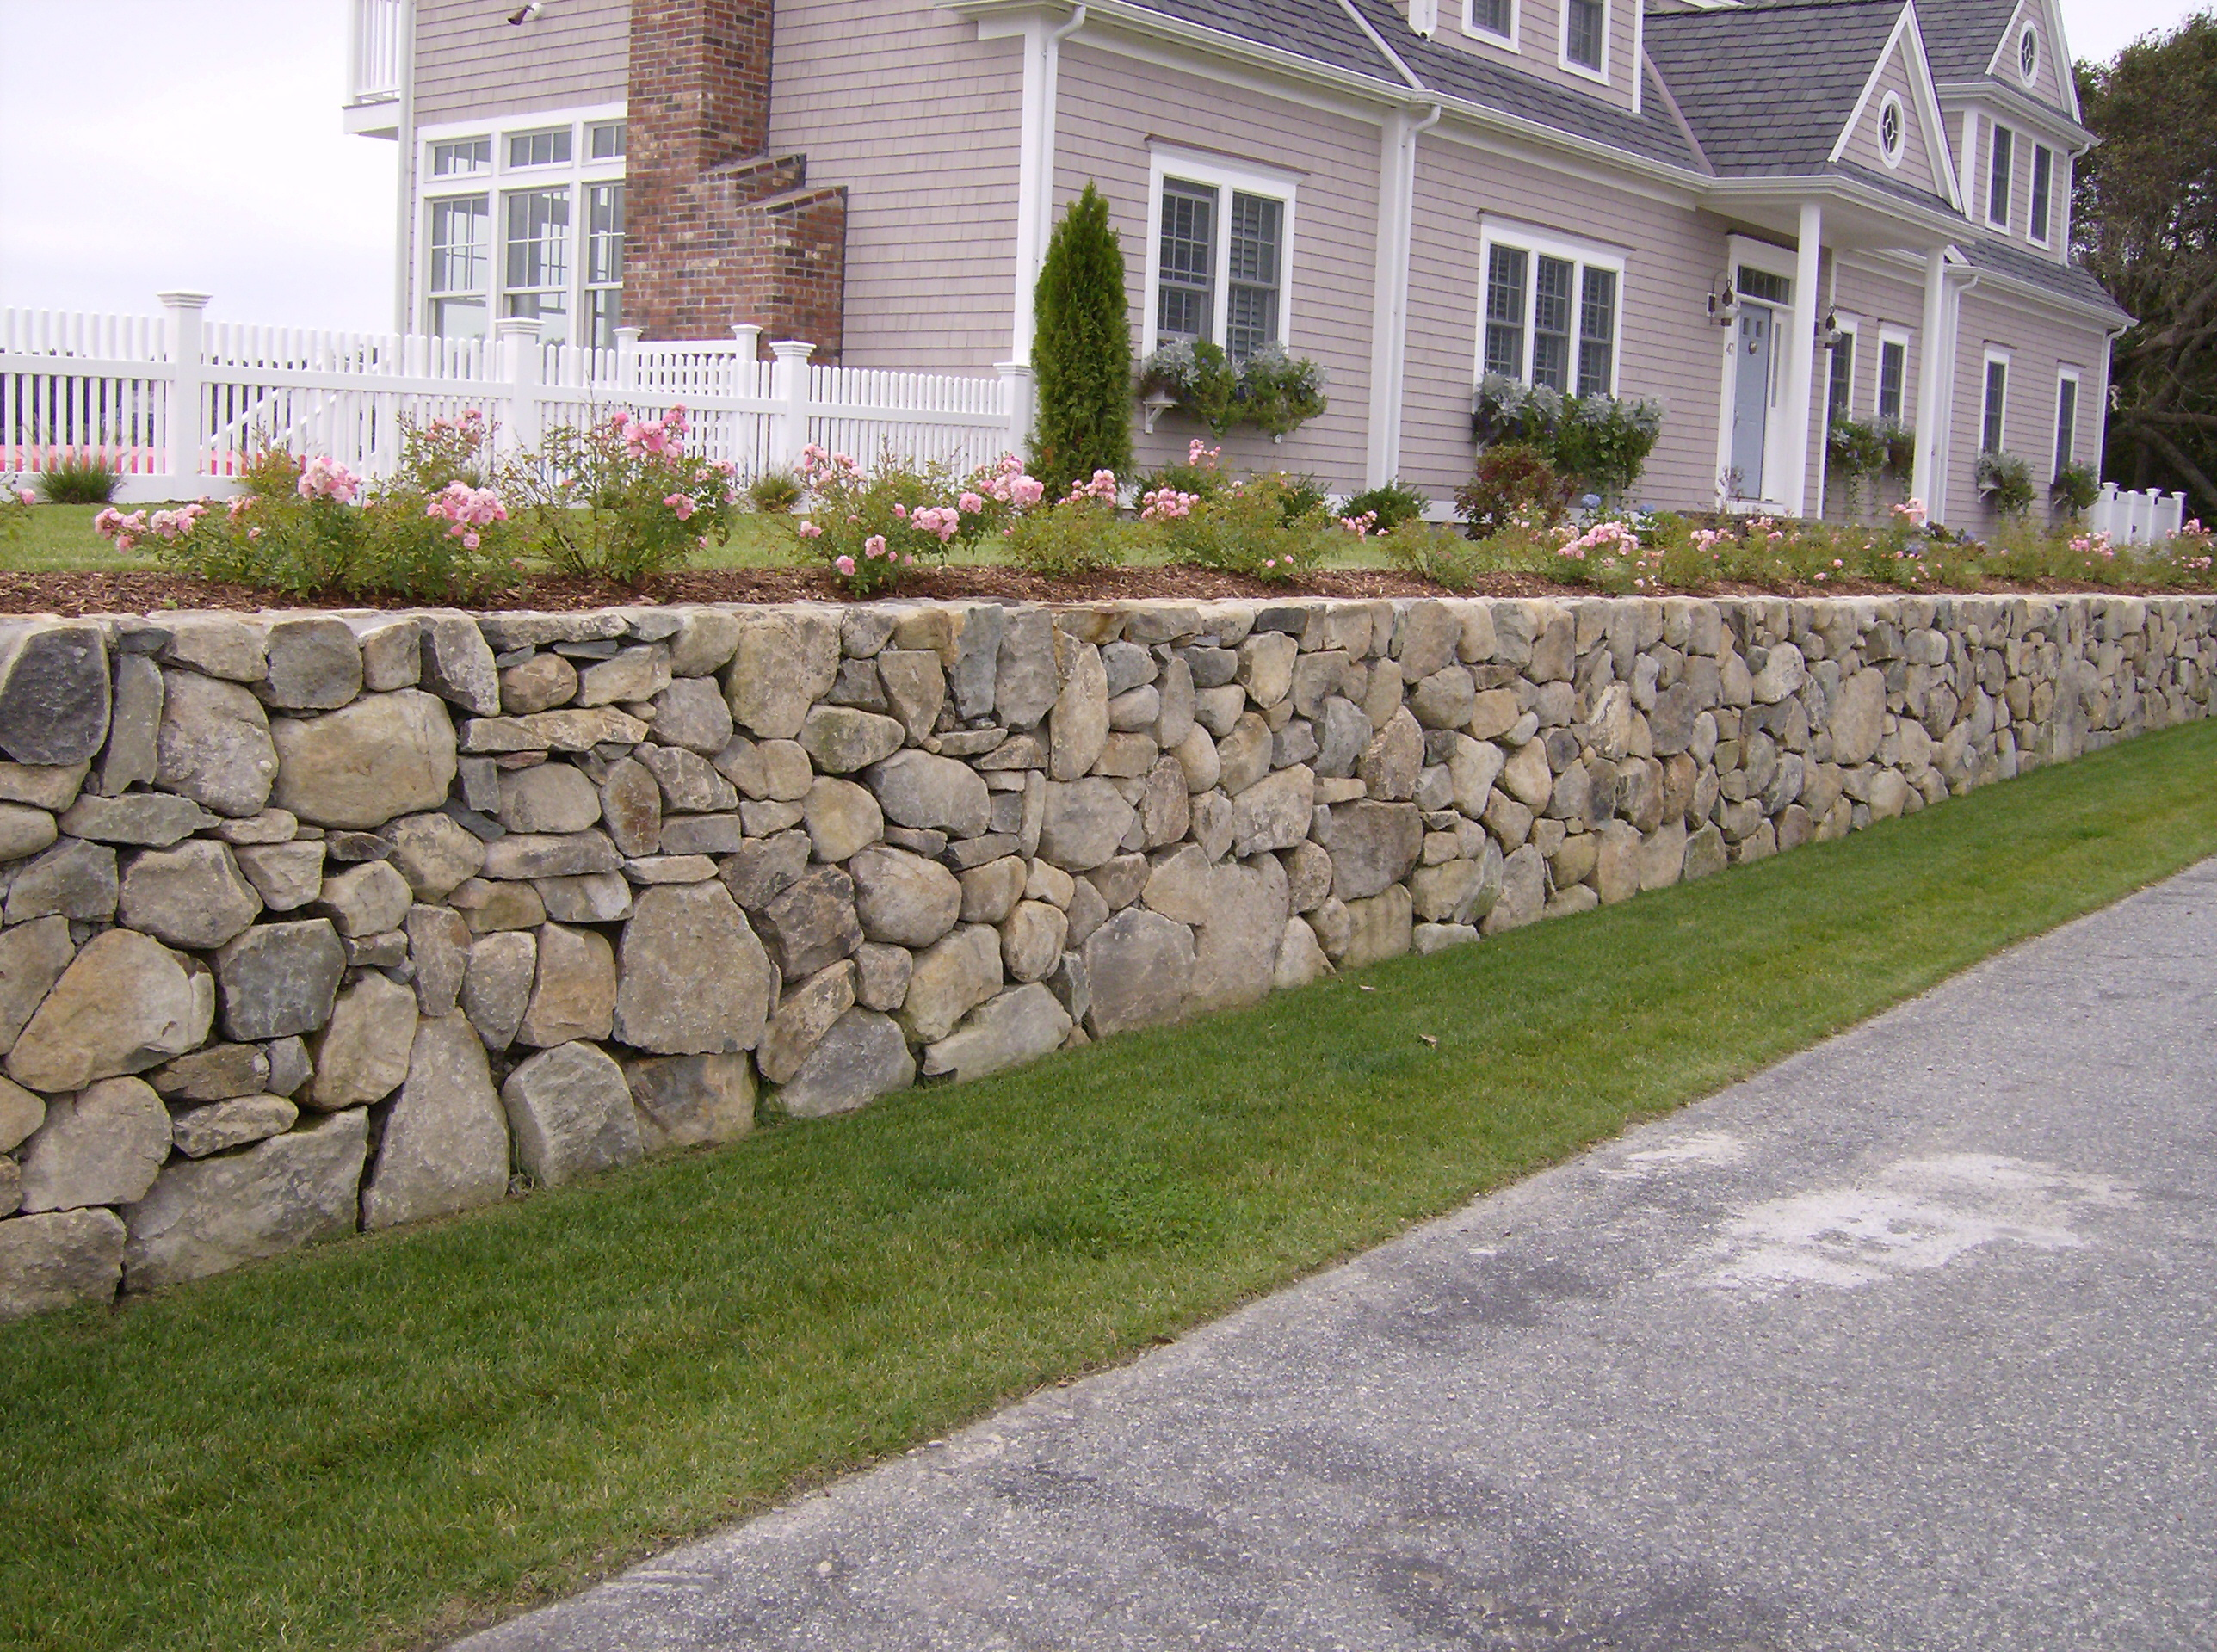 1000 images about retaining wall inspirations on pinterest for Rock wall garden designs